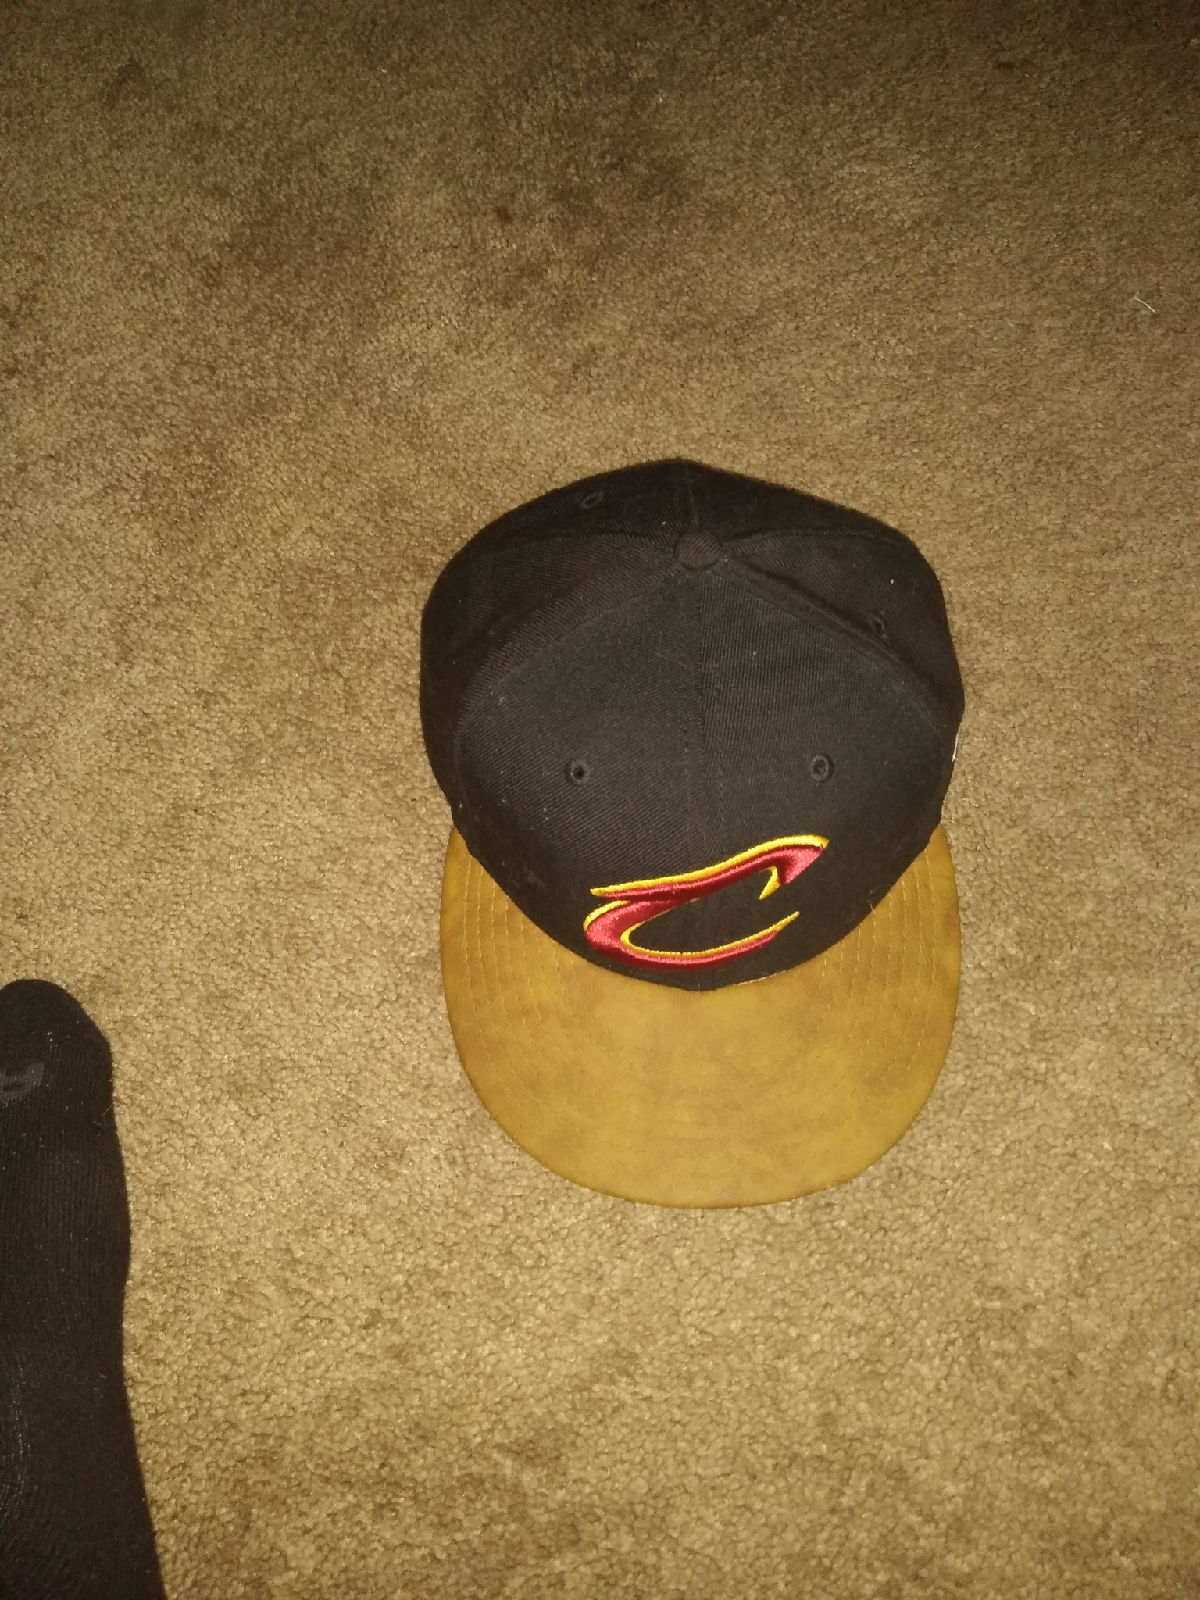 Cleveland cavilers hat